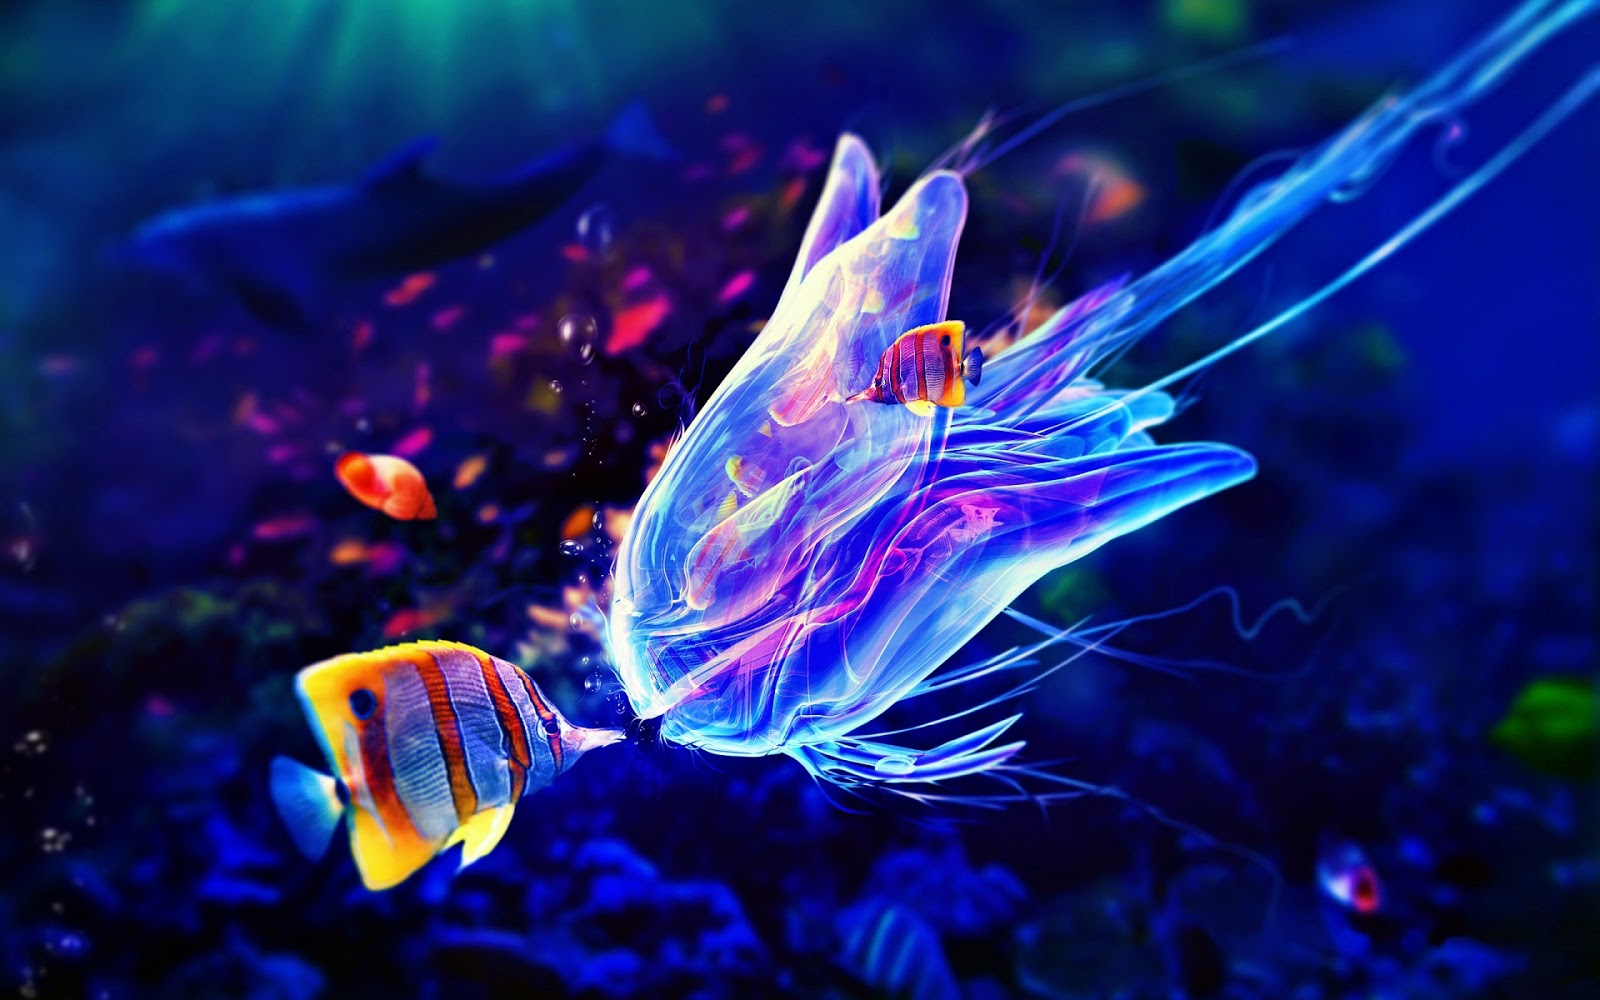 Colorful fish underwater life jelly fish art pics ocean life art - Are Jellyfish Fish The Garden Of Eaden